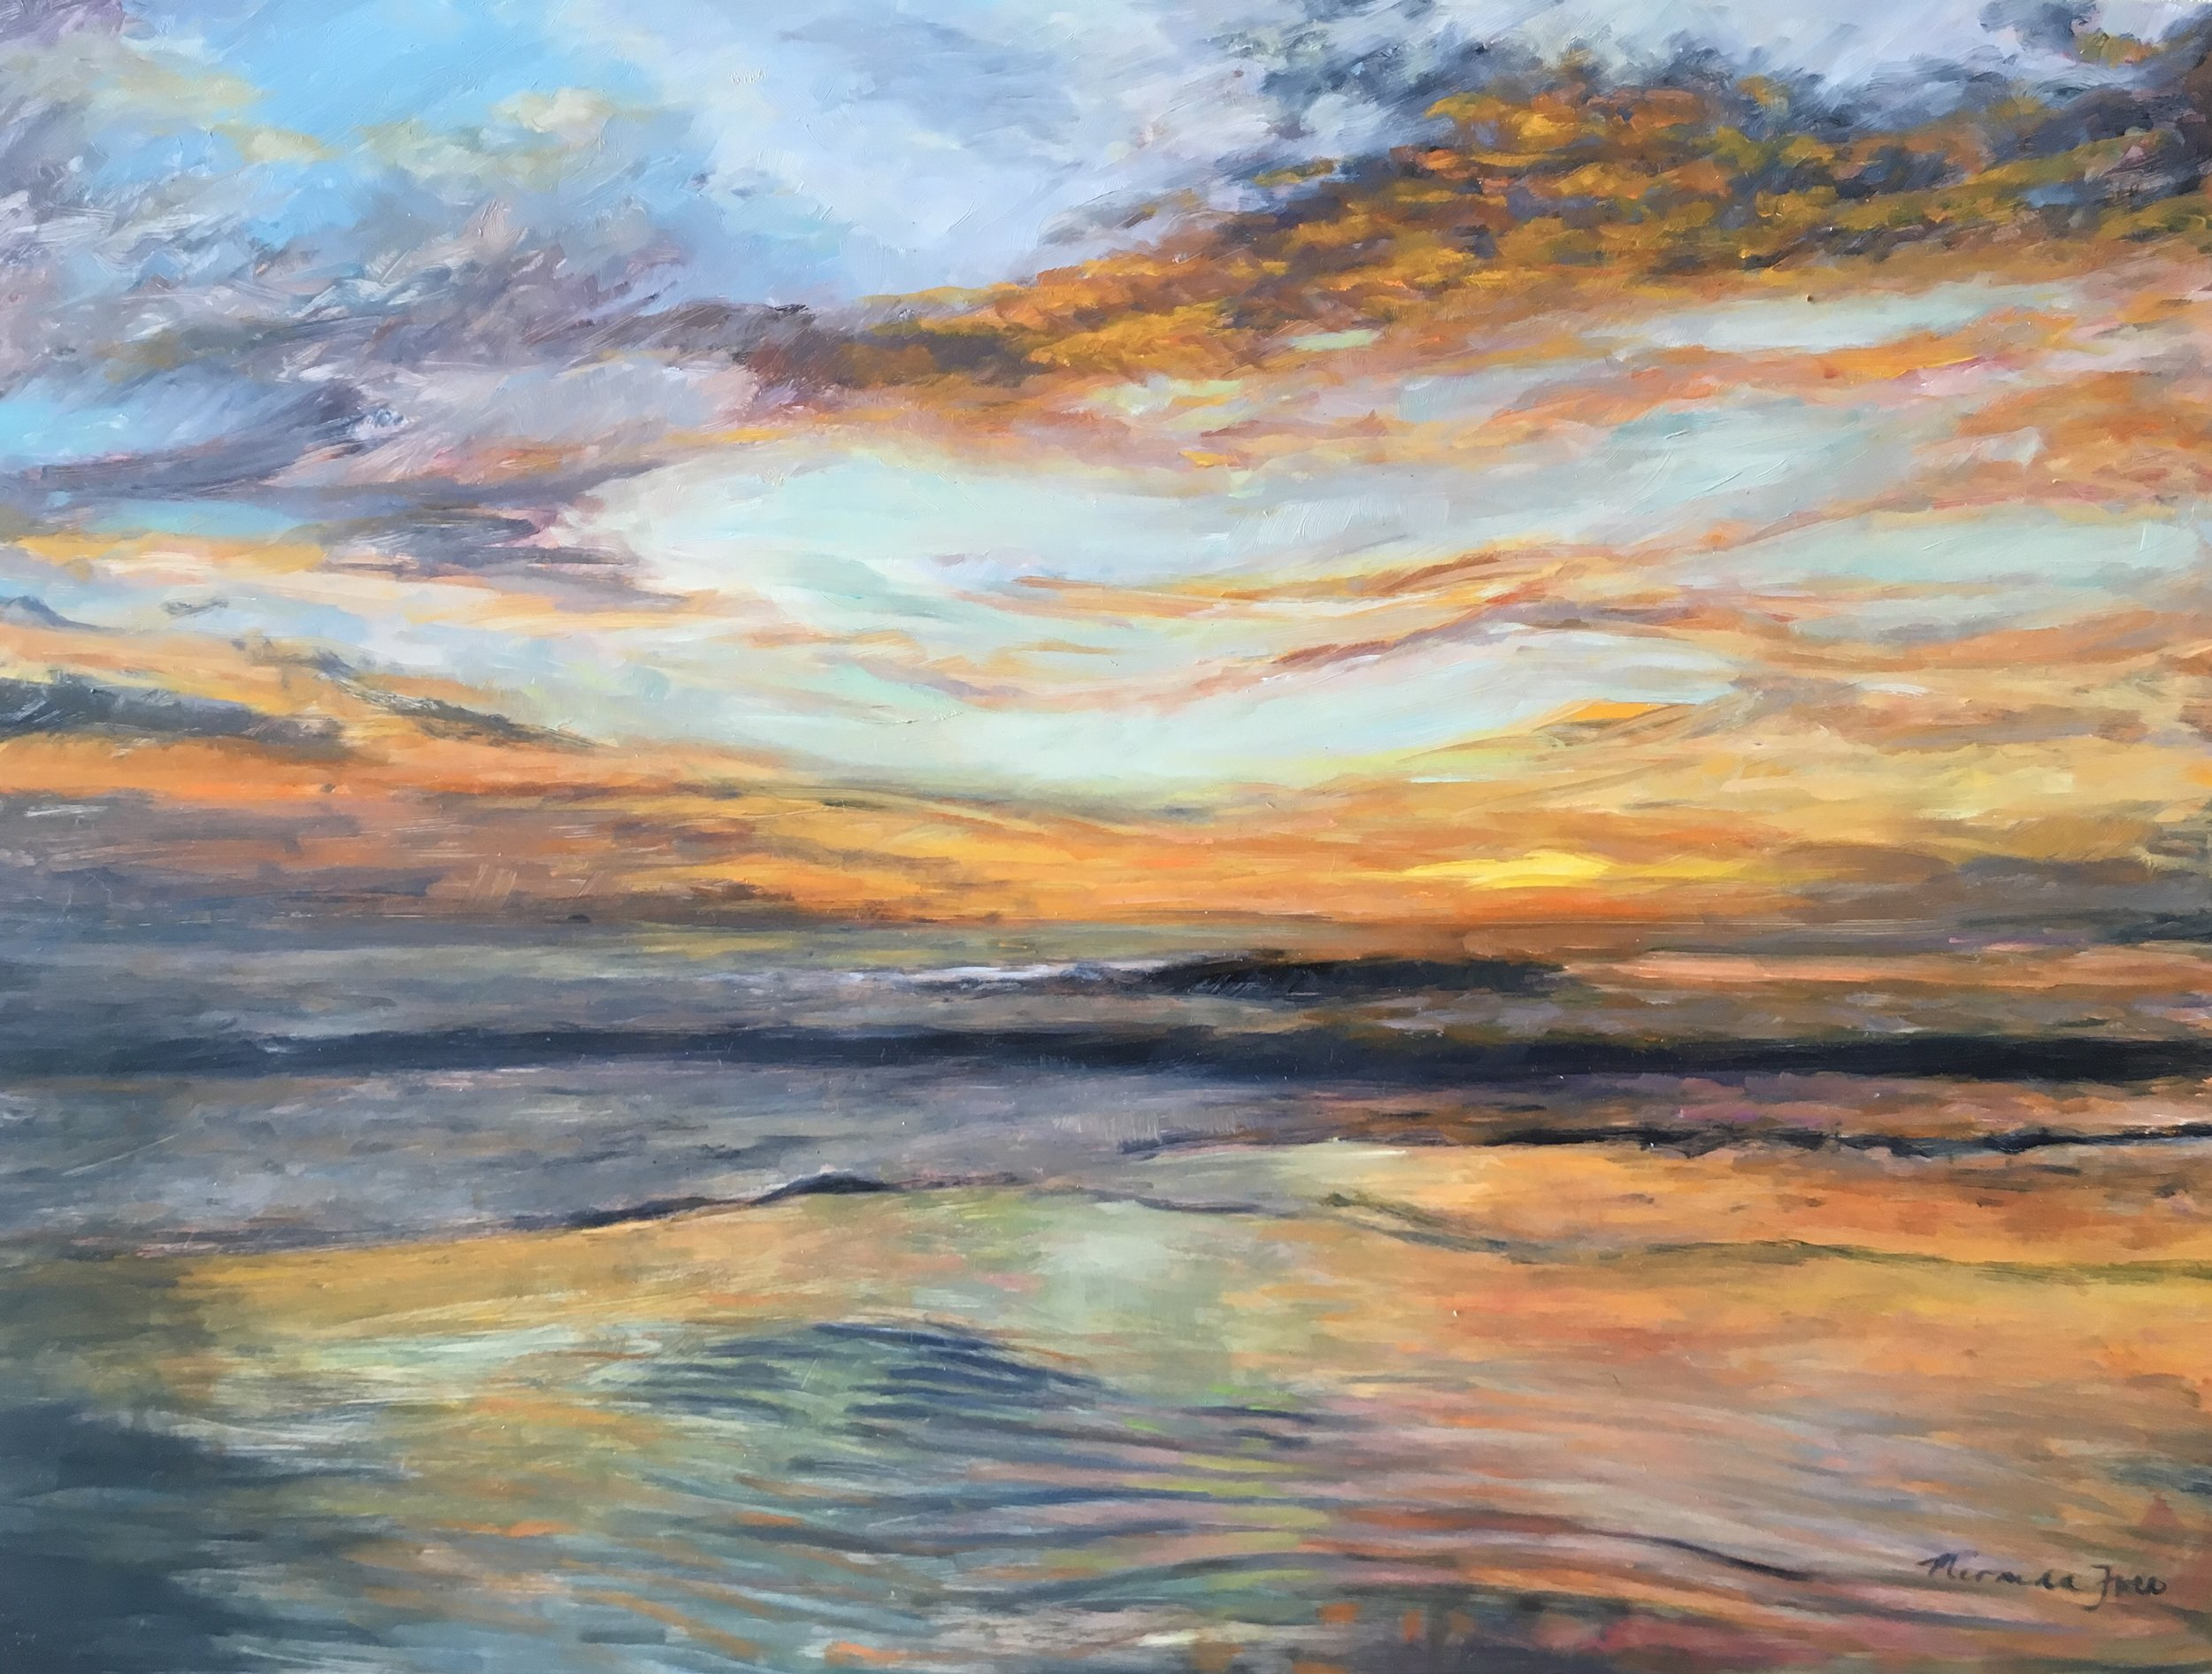 Sunrise at Diggers  Oil on Aluminium Panel   12 x 16 inch  Available